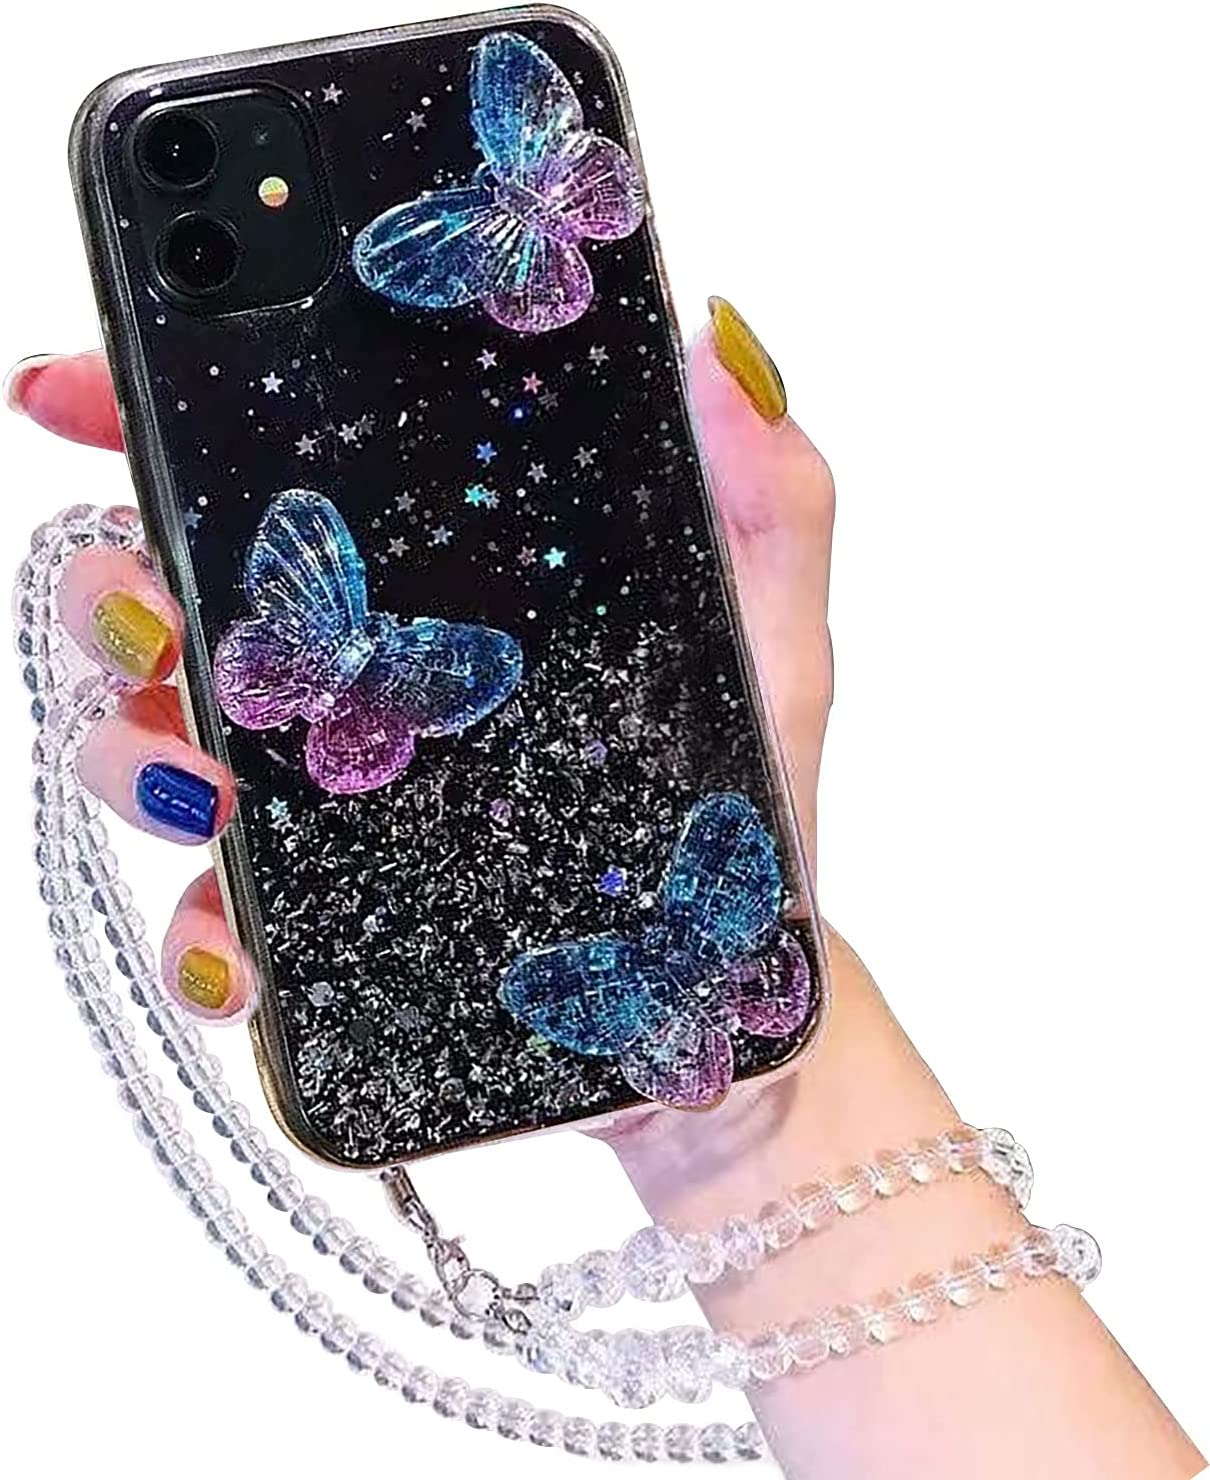 Herzzer Glitter Case for Samsung Galaxy A02S,Cute Crystal Beauty Aesthetic Butterfly Shiny Stars Transparent Shockproof Soft TPU Bumper Bling Case with Crossbody Strap Neck Lanyard - Black